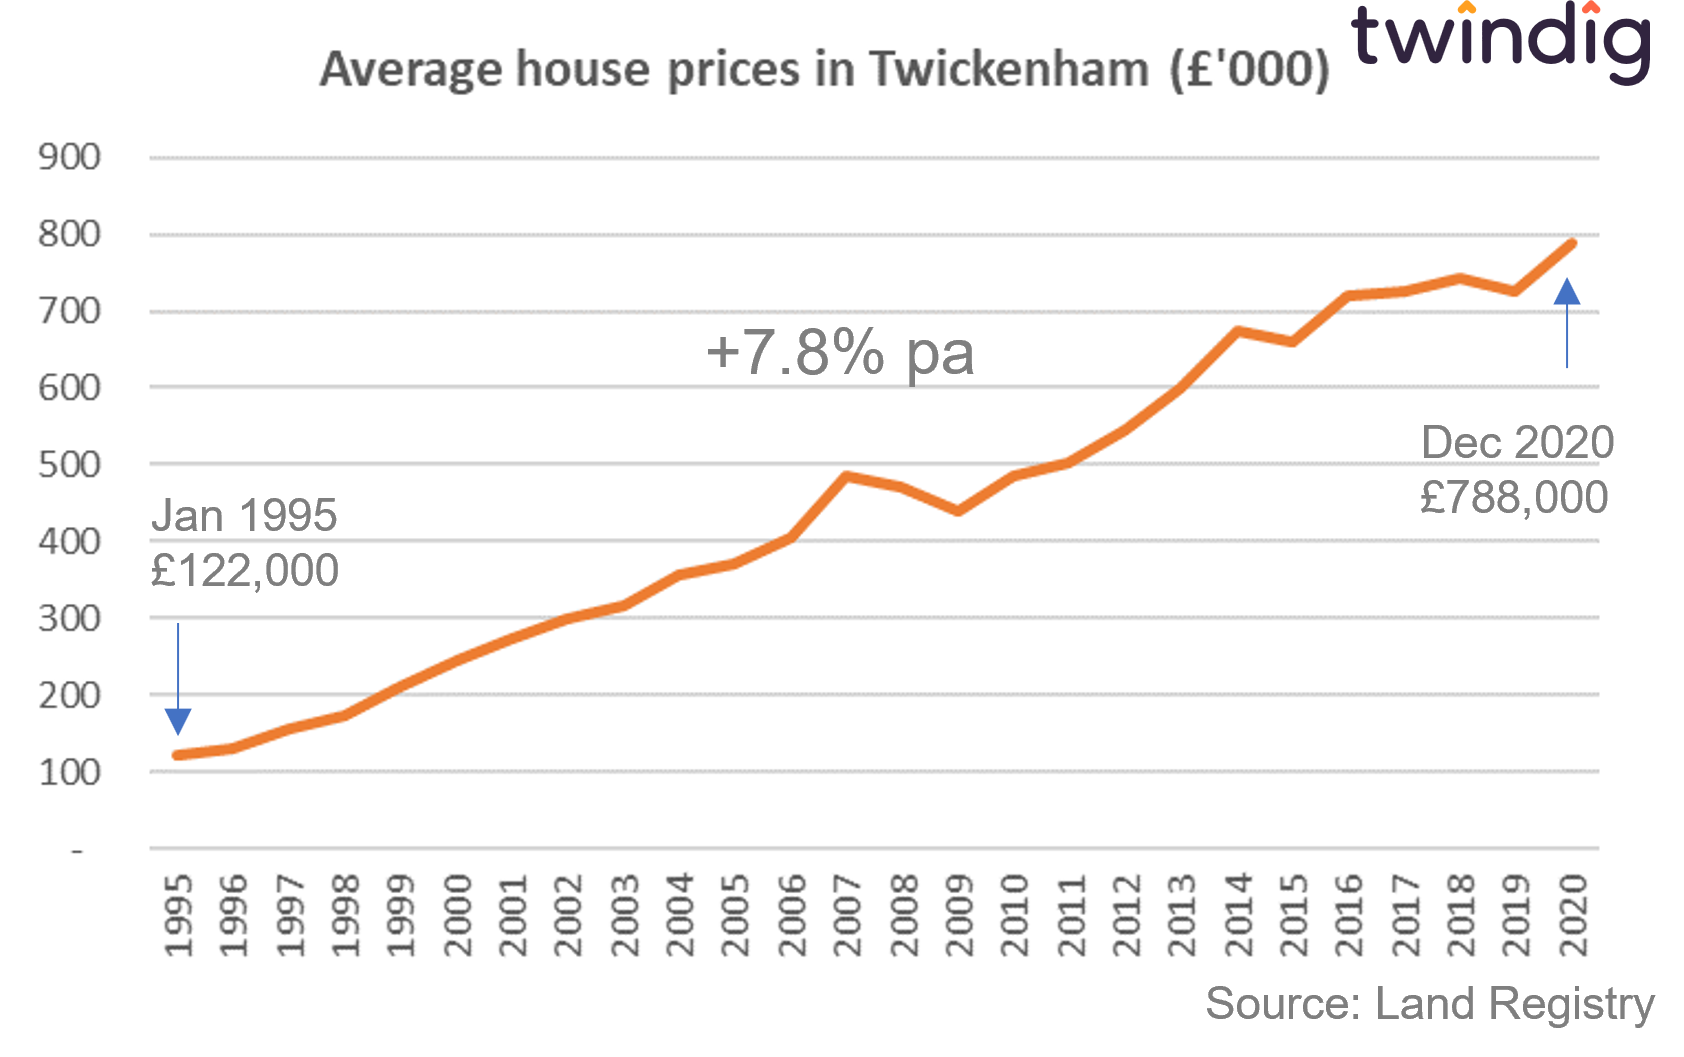 graph chart showing average house prices in Twickenham twindig anthony coding